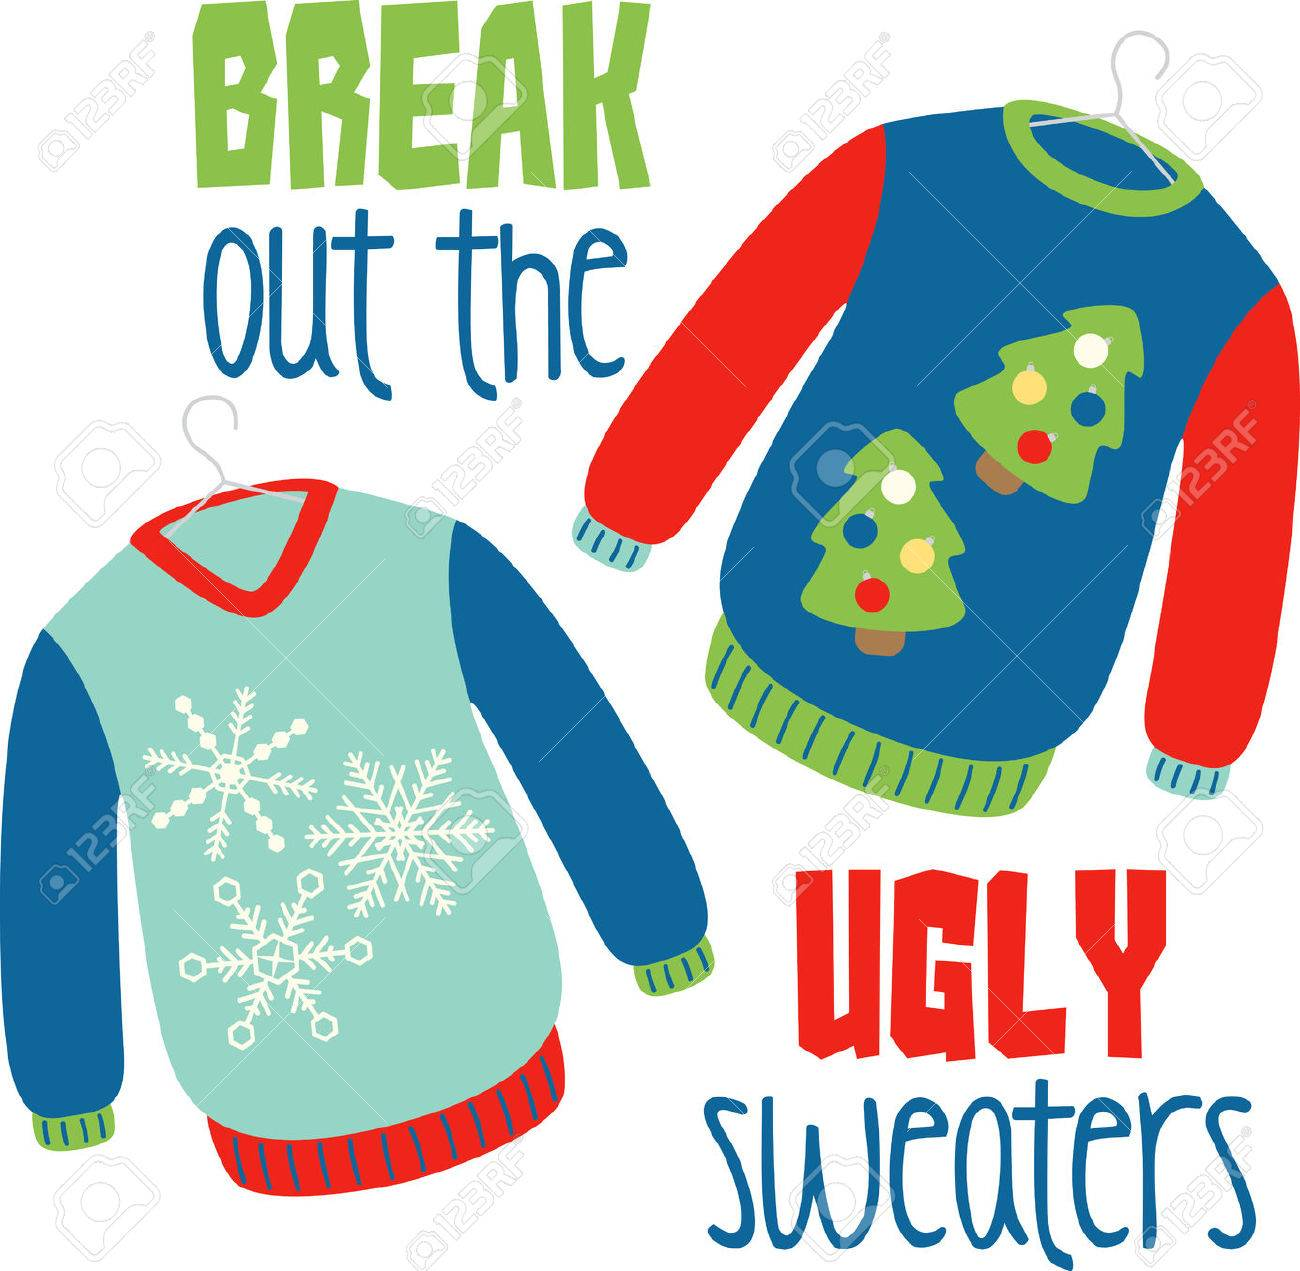 774deb76cc30 Holiday Sweaters To Keep You Warm During The Festive Season Royalty ...